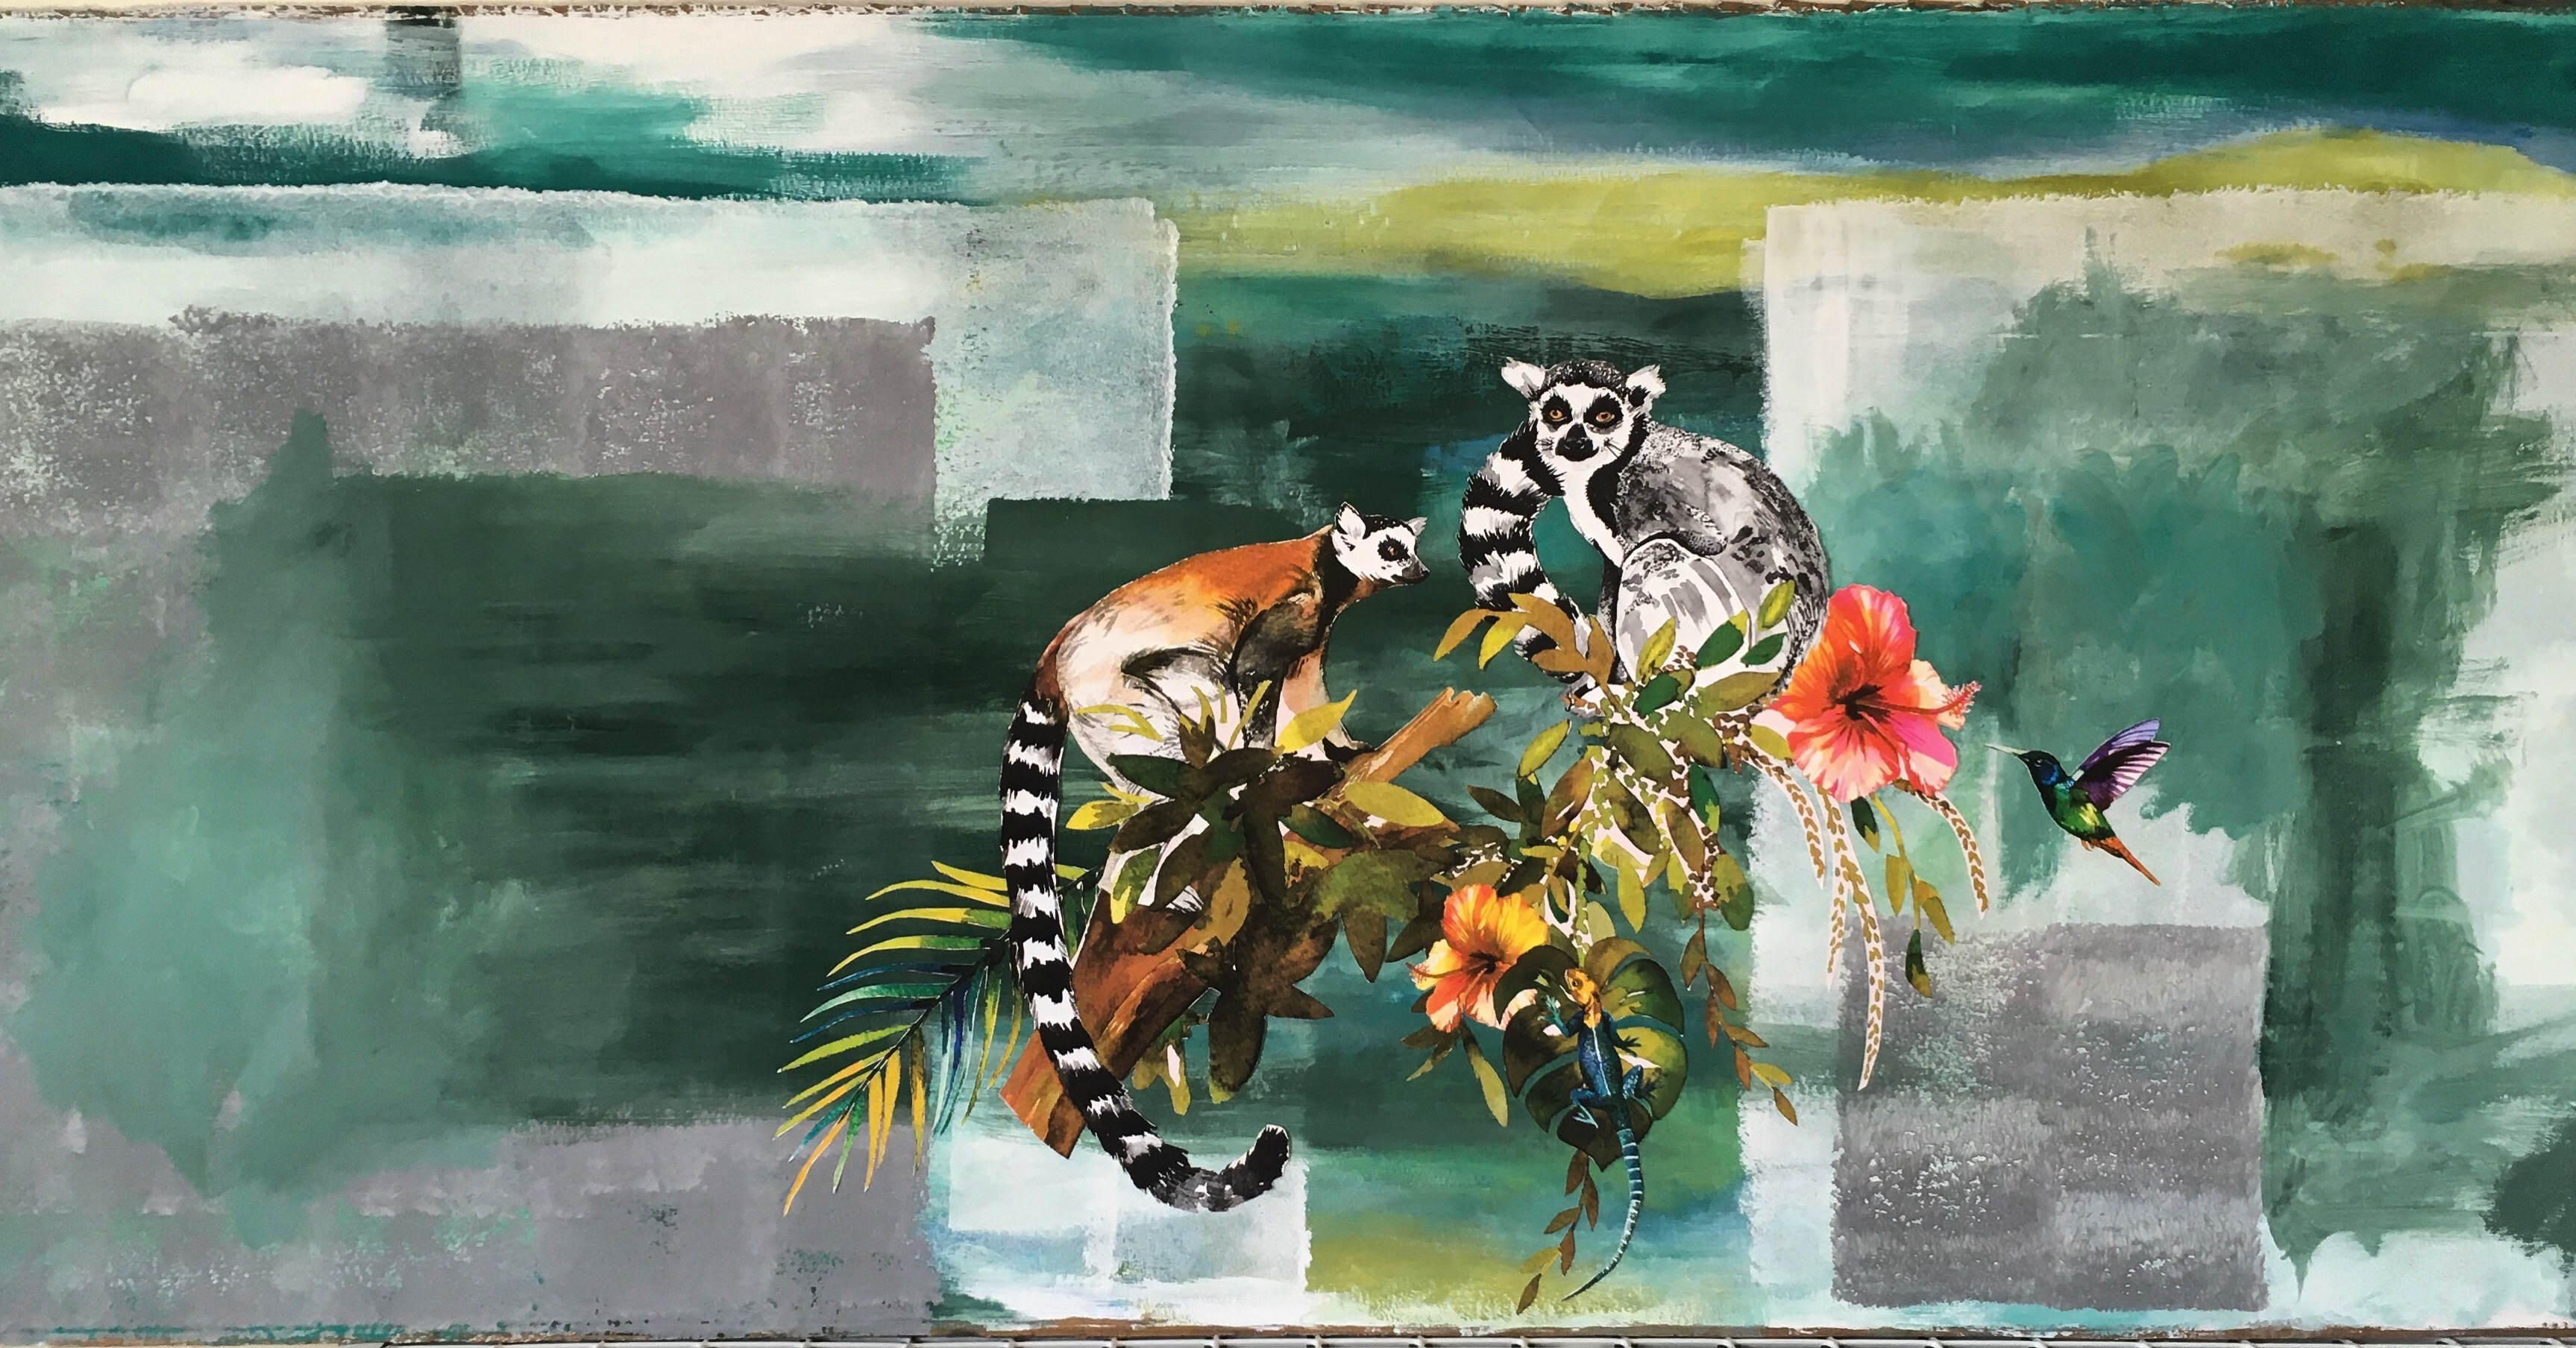 Artwork shows lemurs and a hummingbird against an abstract background.